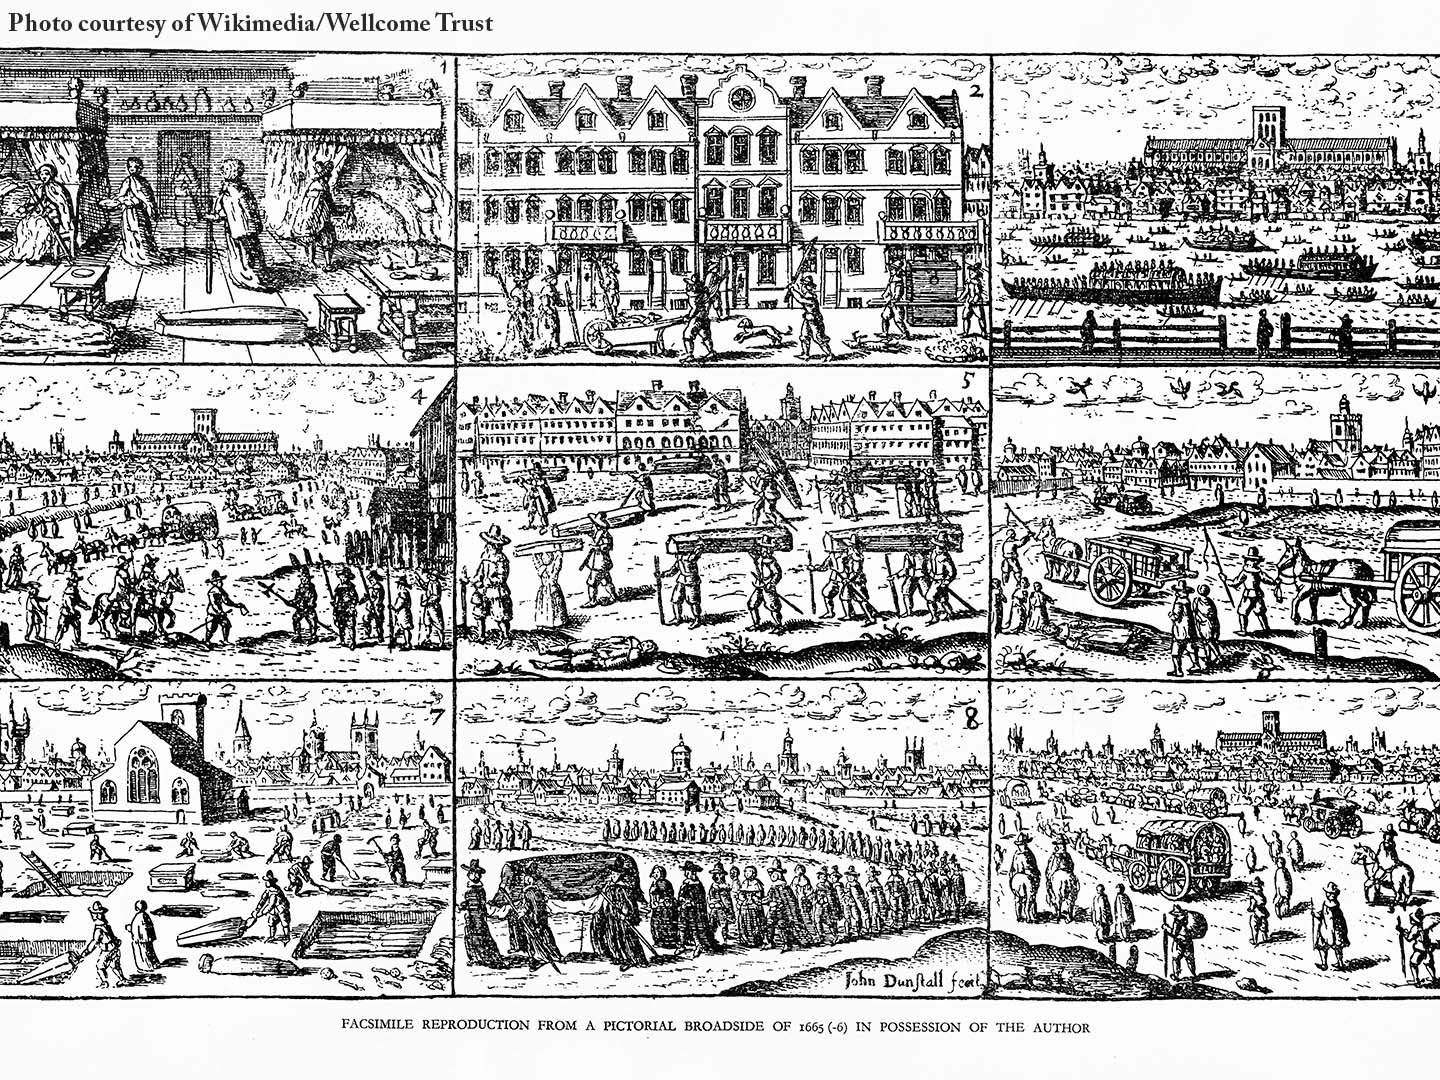 Nine black and white woodcut images of the Great Plague of London in 1665, courtesy of Wikimedia/Wellcome Trust